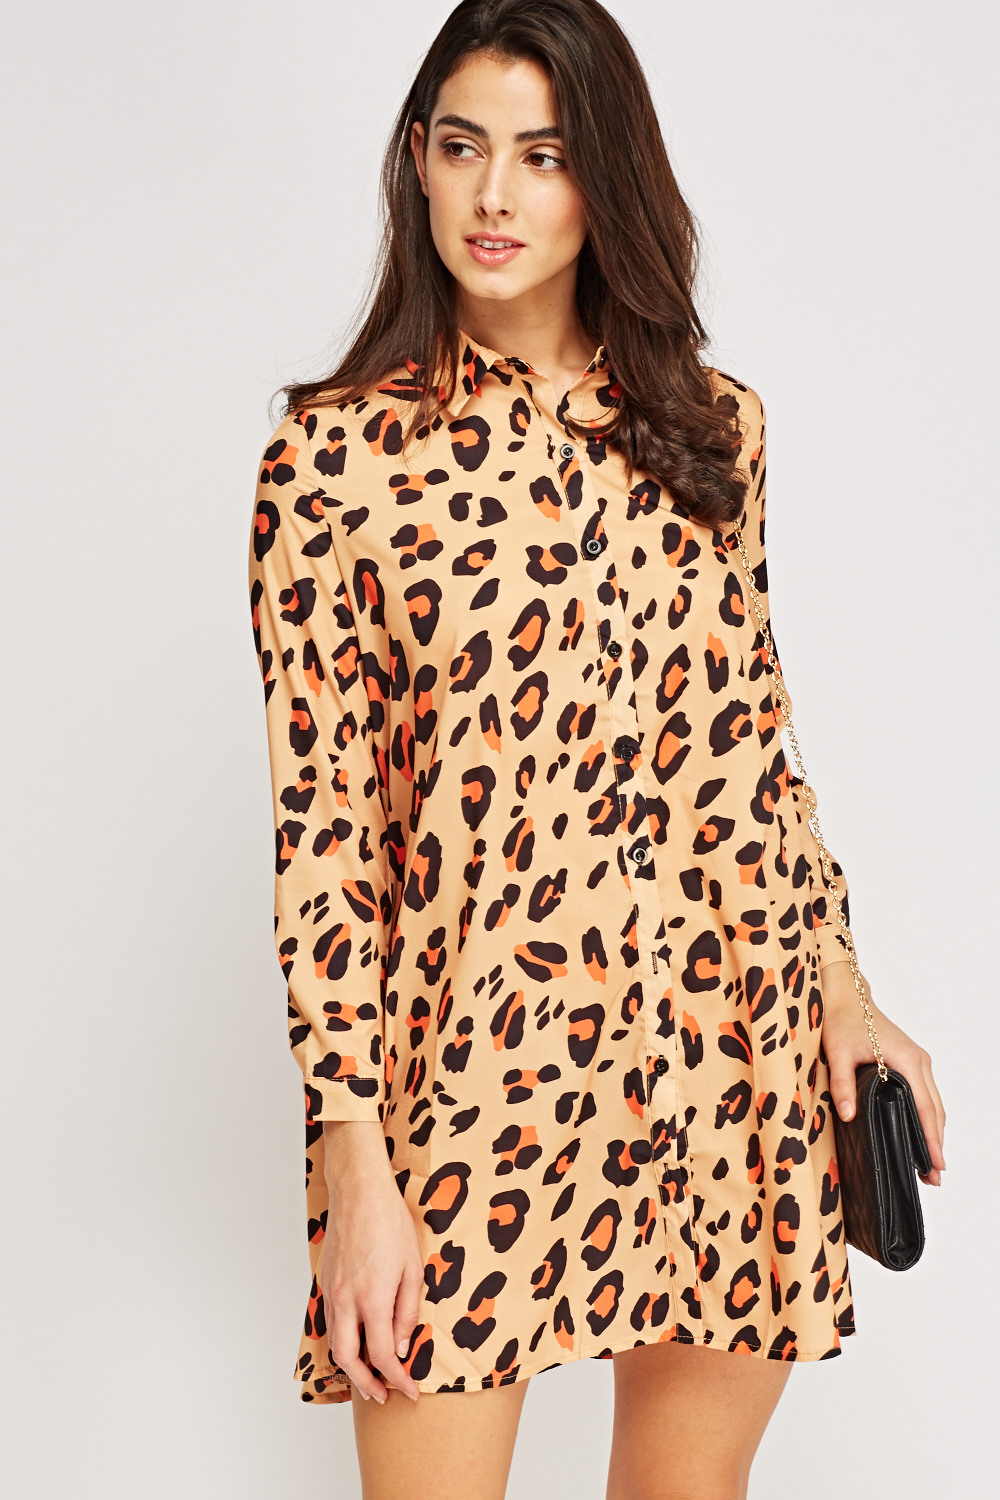 a5965b6e4b24 Leopard Print Shirt Dress - Just £5